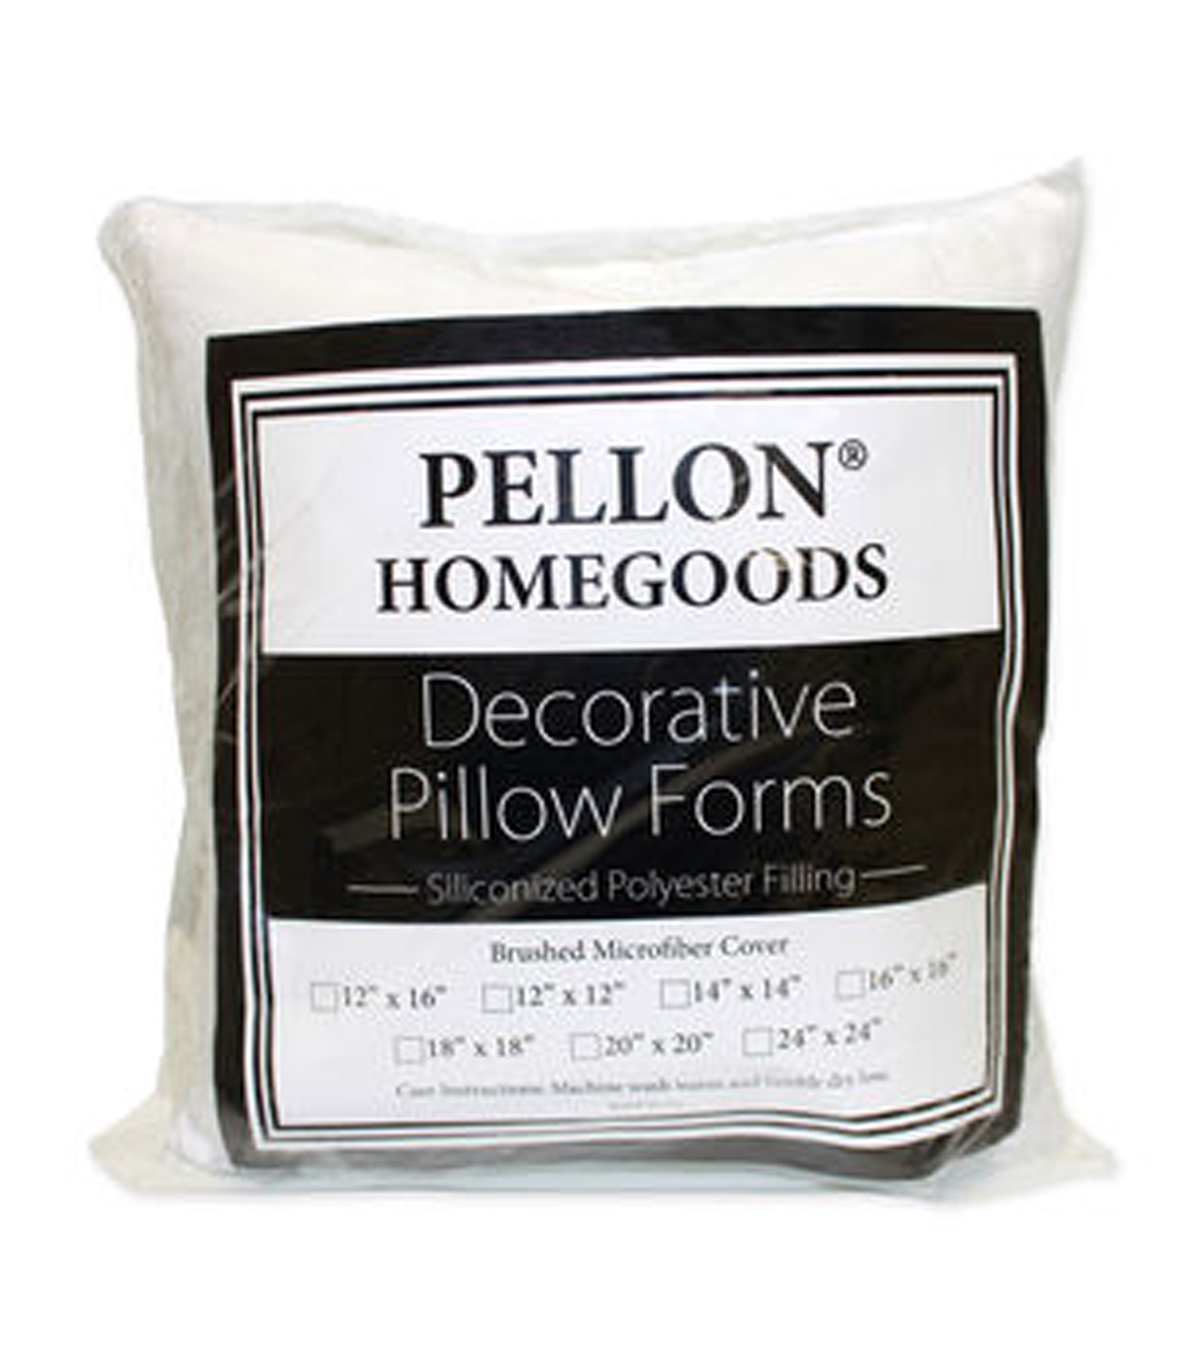 Pellon Decorative 12\u0022 x 16\u0022 Microfiber Pillow Form